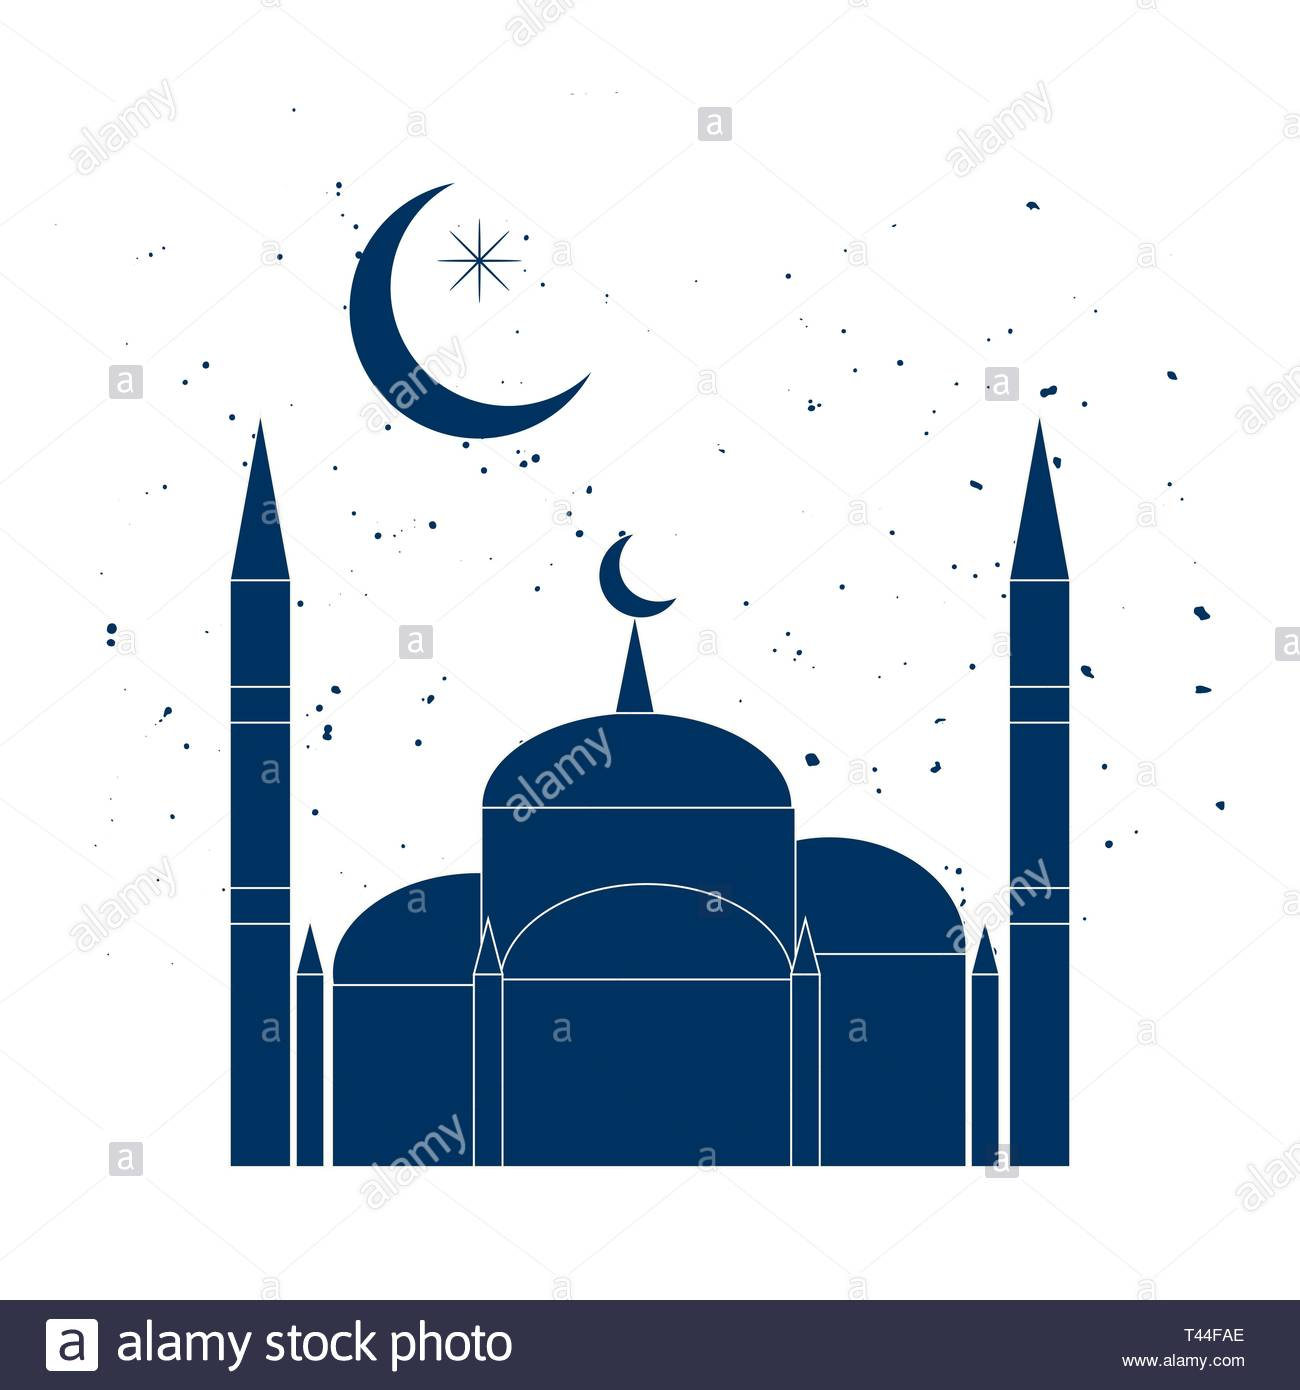 Ramadan Kareem background with mosque silhouettes against night sky -  Download Free Vectors, Clipart Graphics & Vector Art